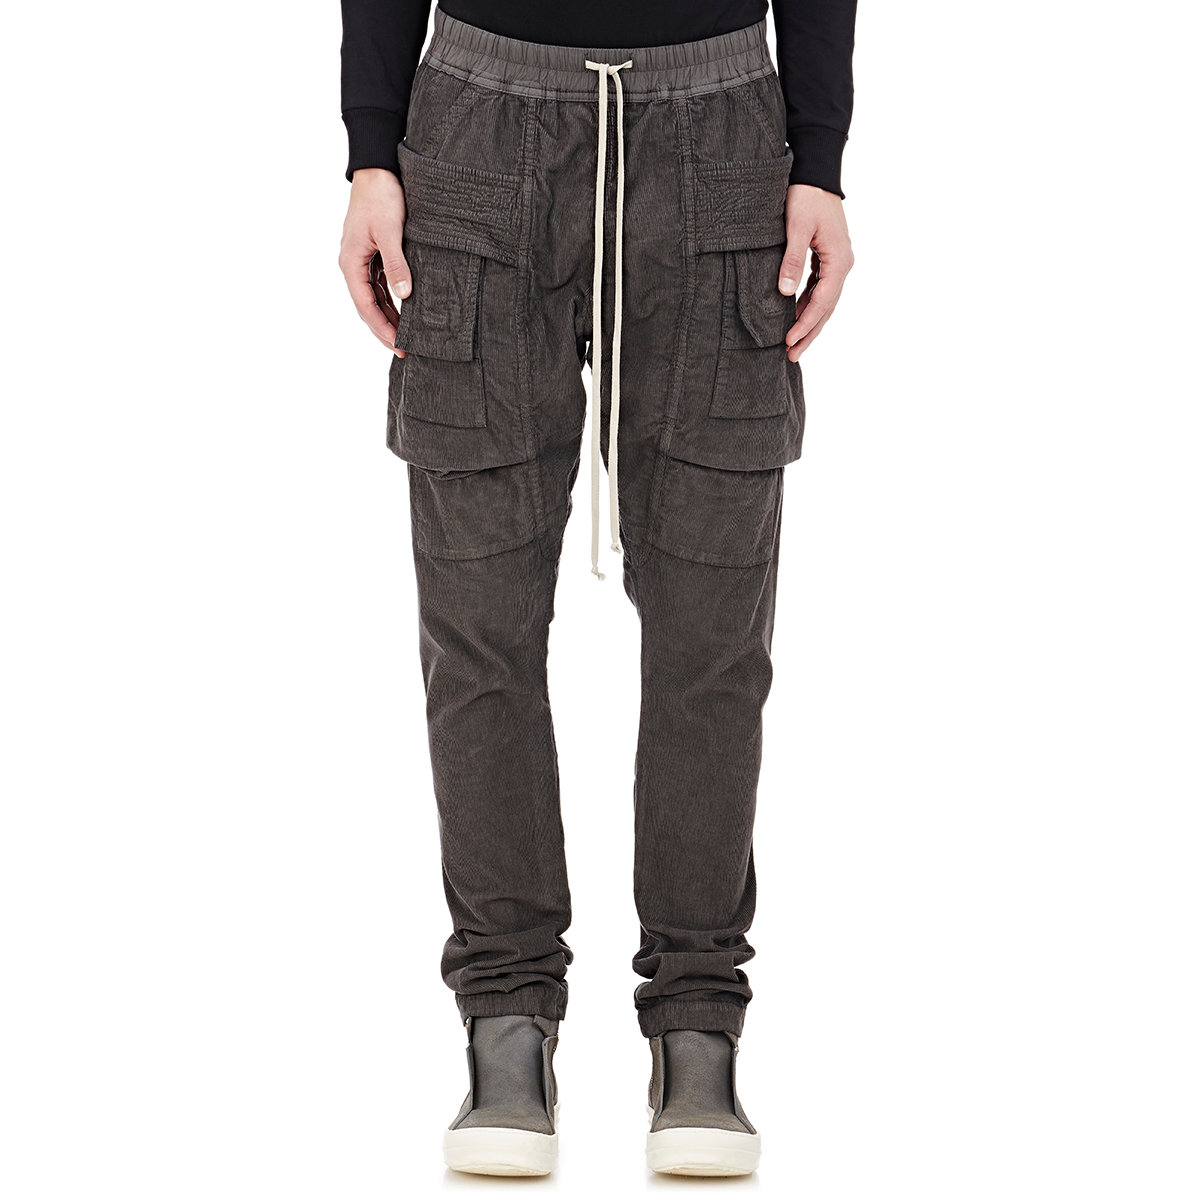 127f7a9e338 Lyst - DRKSHDW by Rick Owens Creatch Cargo Pants in Gray for Men